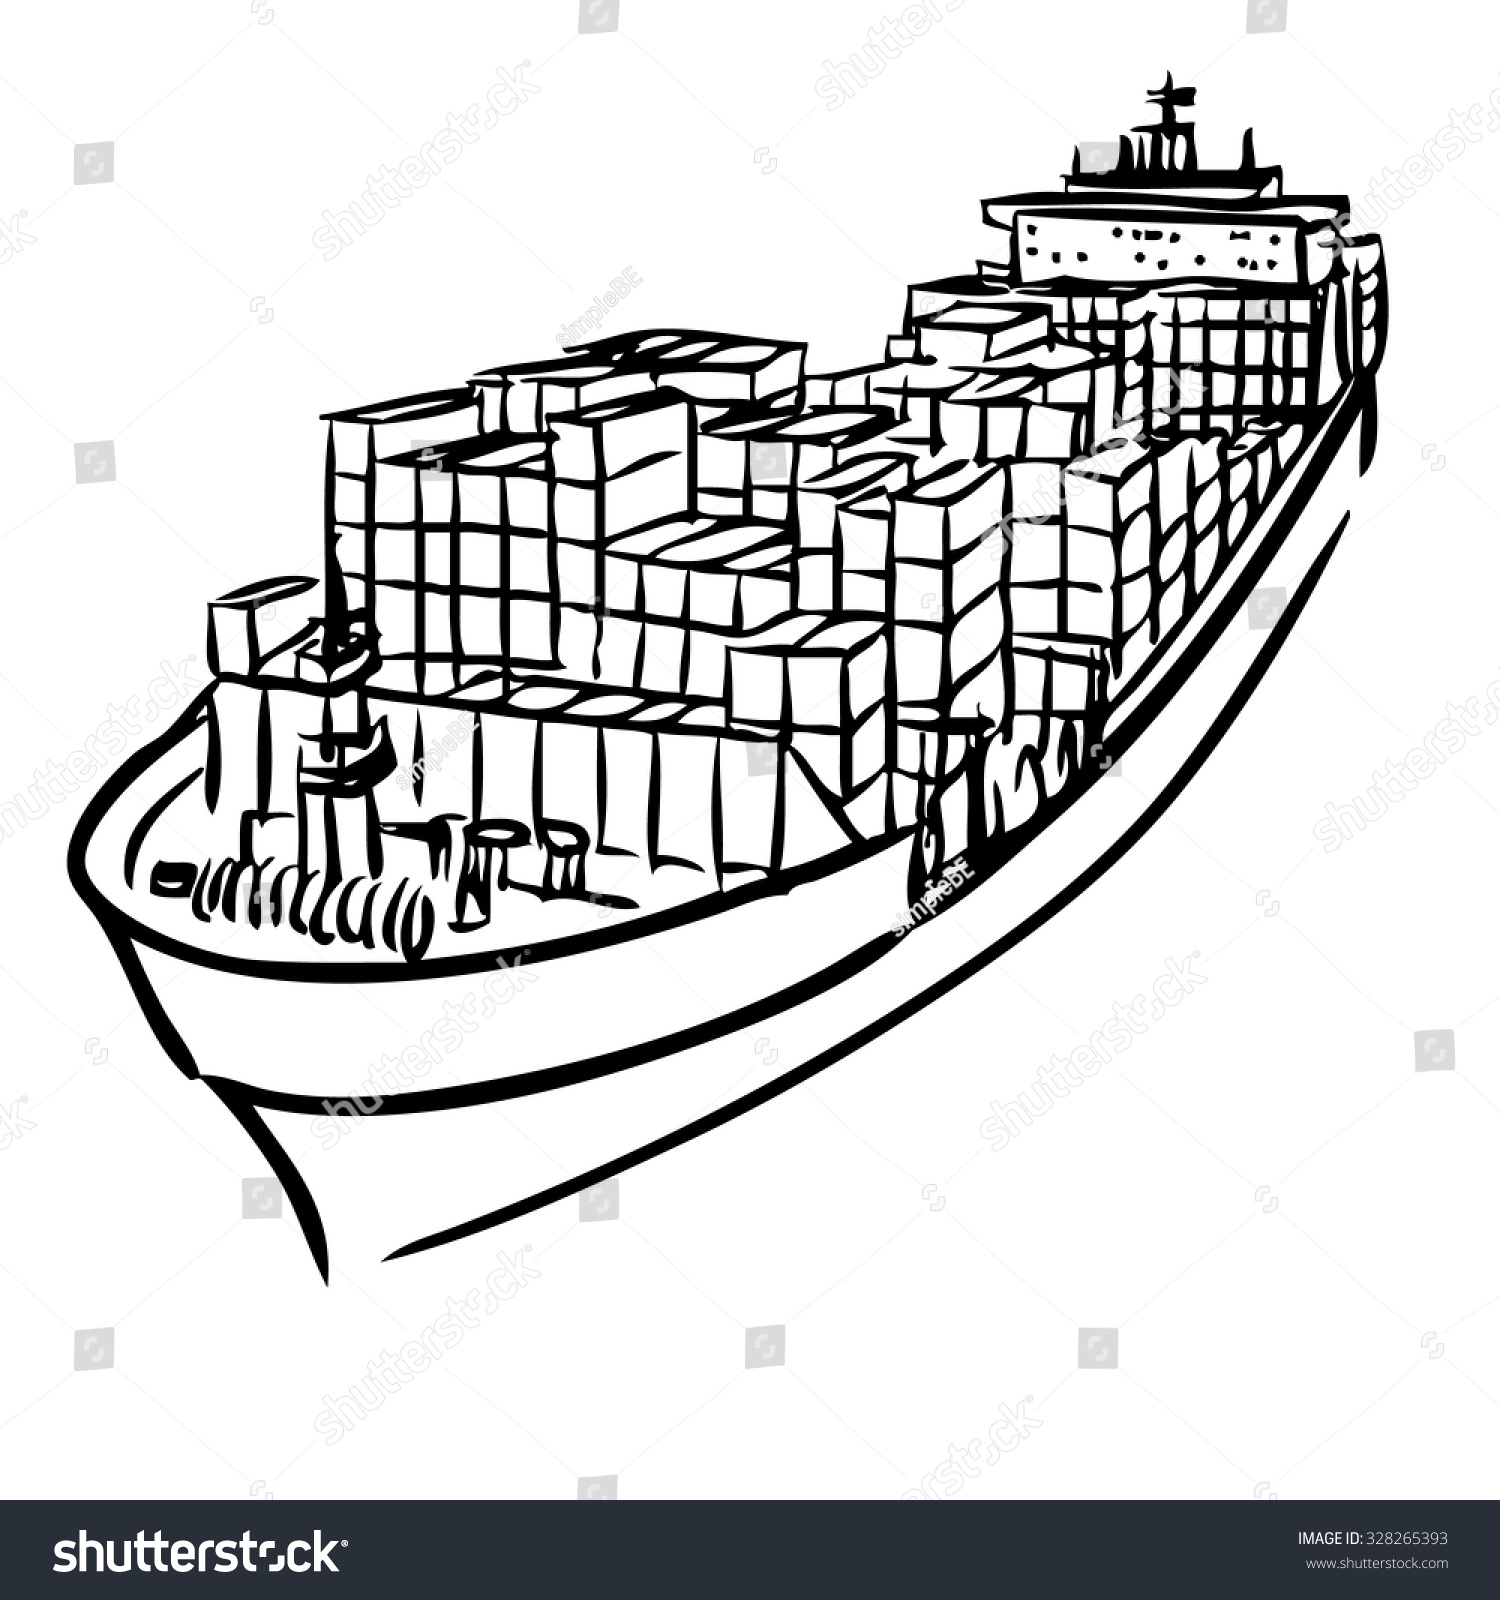 Cargo ship clipart black and white 7 » Clipart Station.